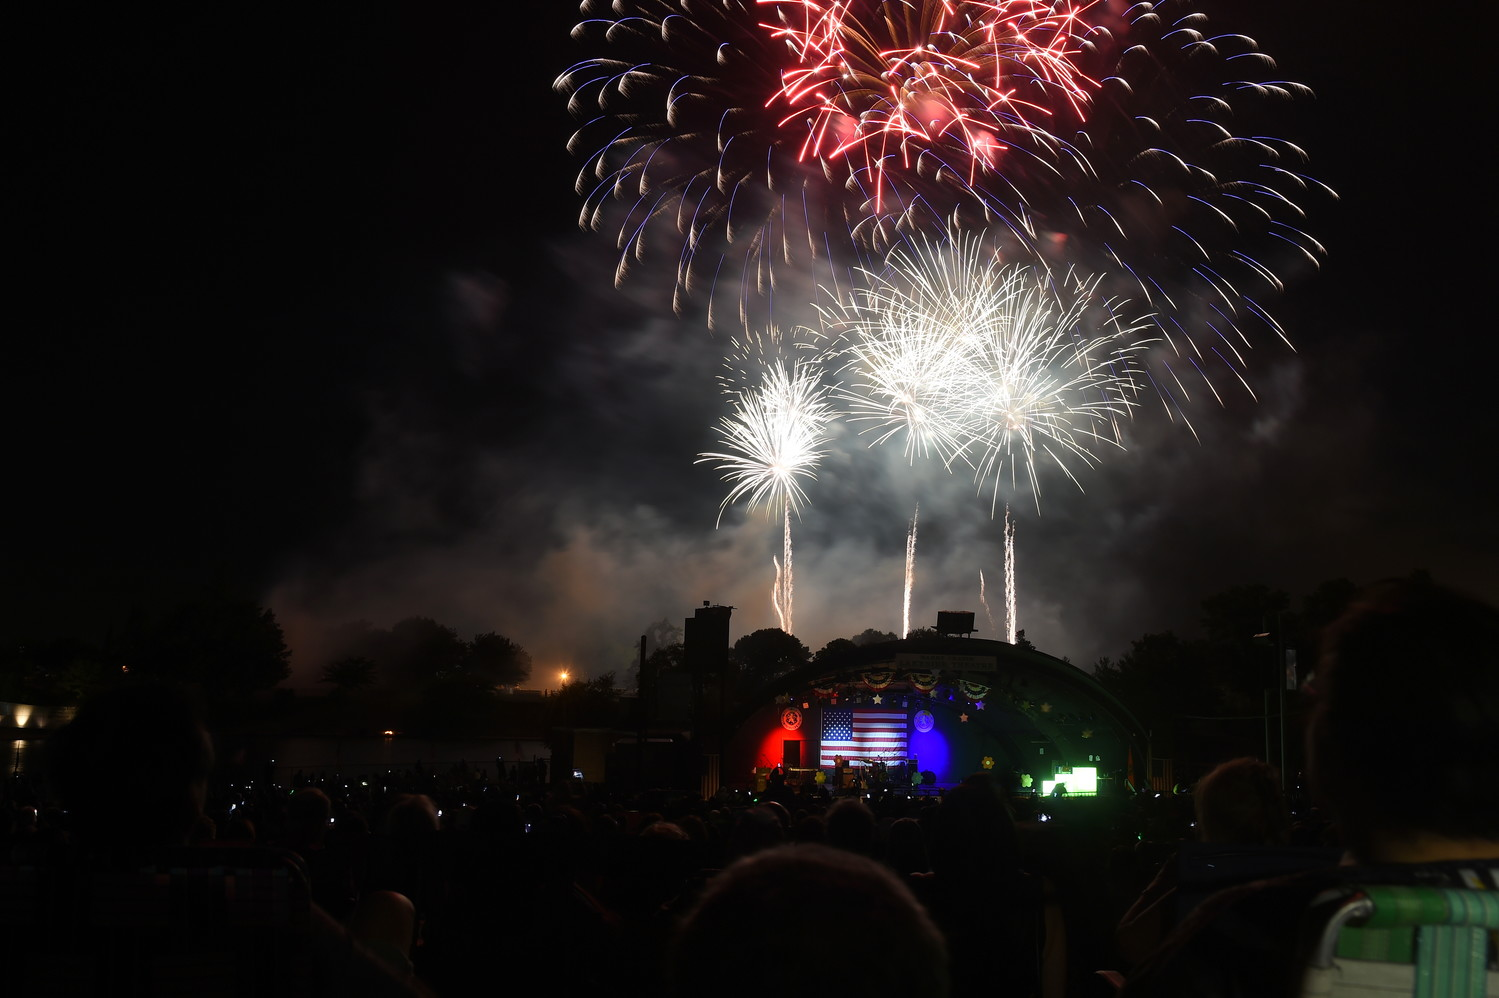 Fireworks lit up the sky above Eisenhower Park's Harry Chapin Lakeside Theater on June 30.